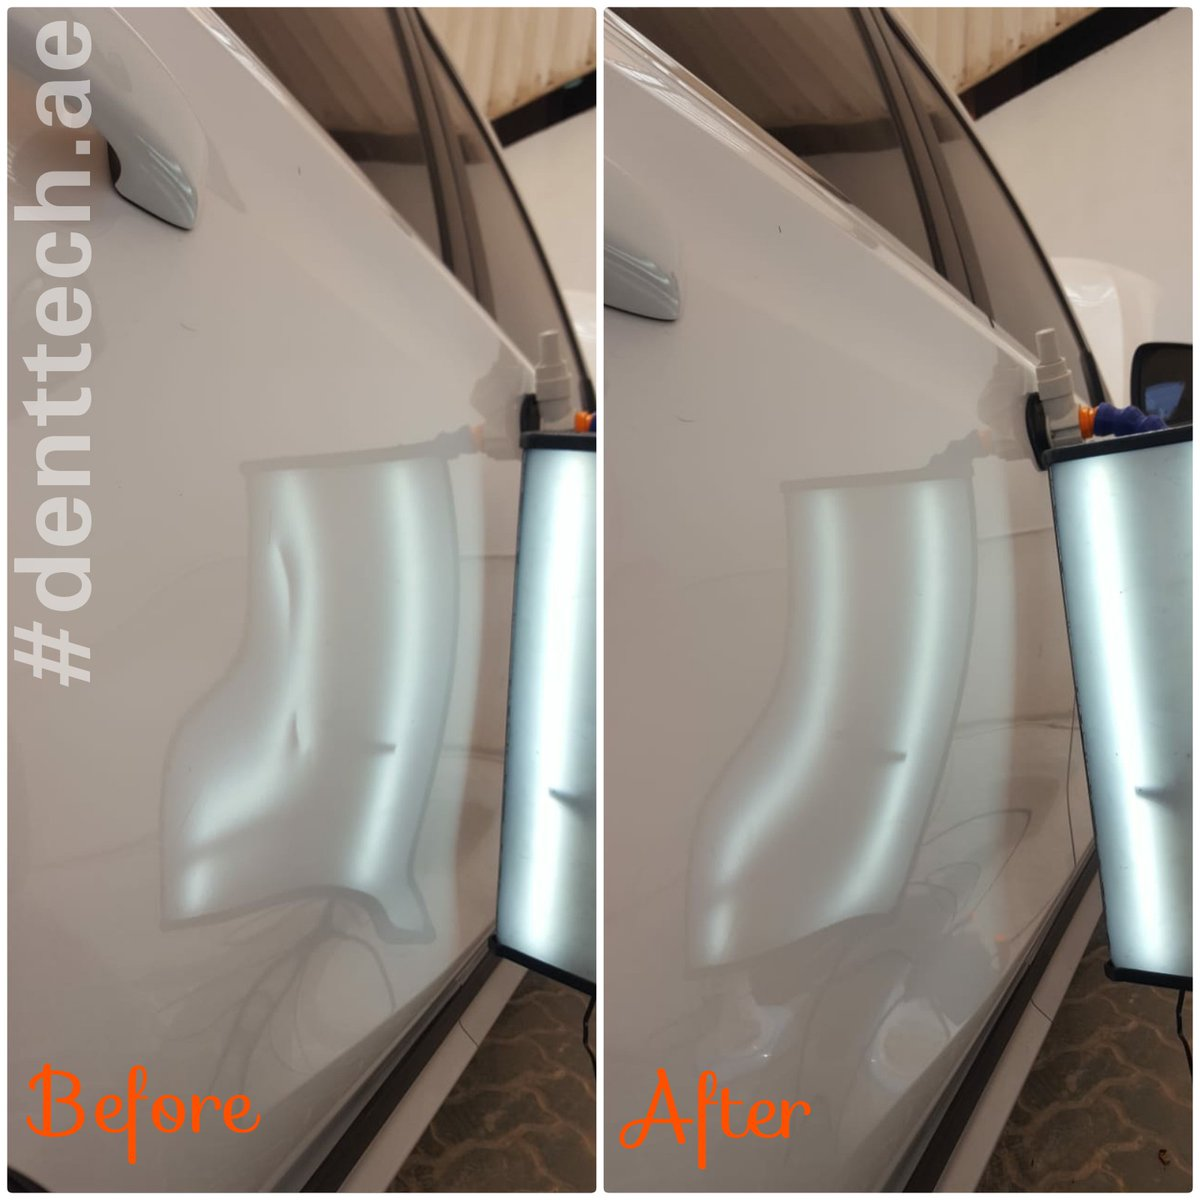 #mg We remove any car Dent without paint, the job can be done in short time at your place, because we care your car, Make your car again new, Call us for more details 00971559888165 . . . . #dubaicars #dubai #uae #cars #dubailife #mydubai #abudhabi #uaecars #dxb #dubaimall pic.twitter.com/99VziC08zM